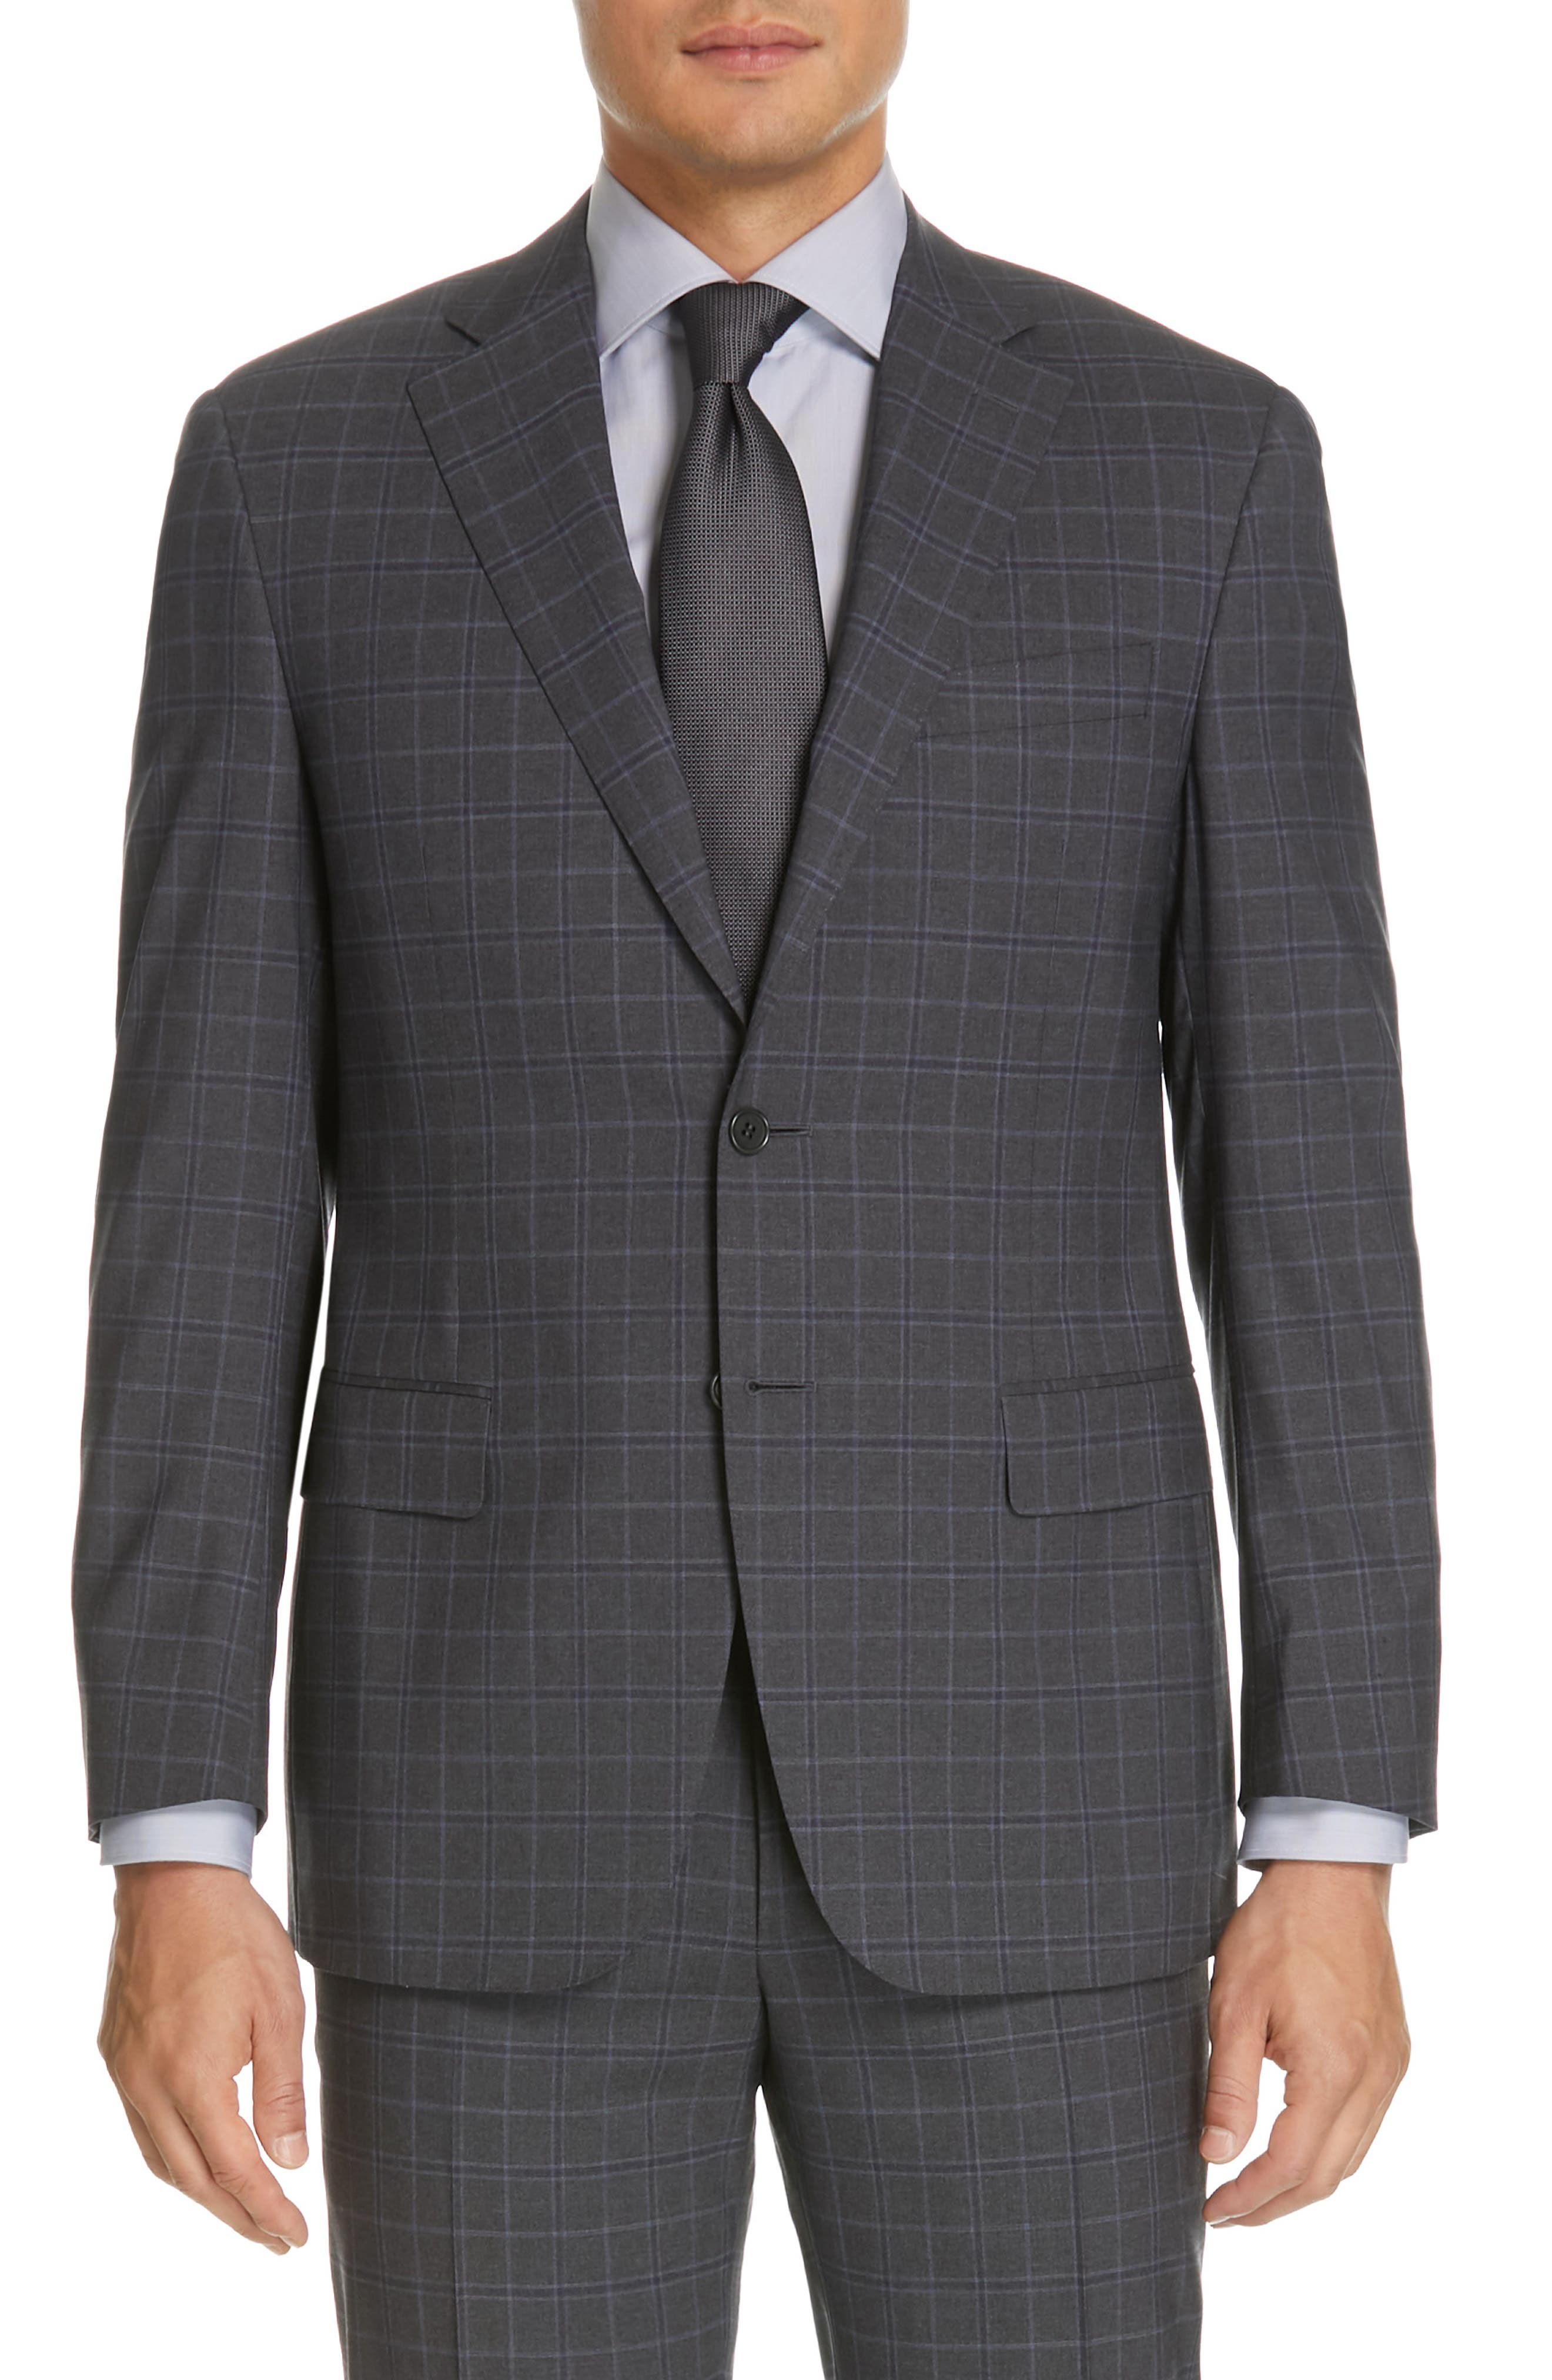 CANALI, Sienna Classic Fit Plaid Wool Suit, Alternate thumbnail 5, color, CHARCOAL